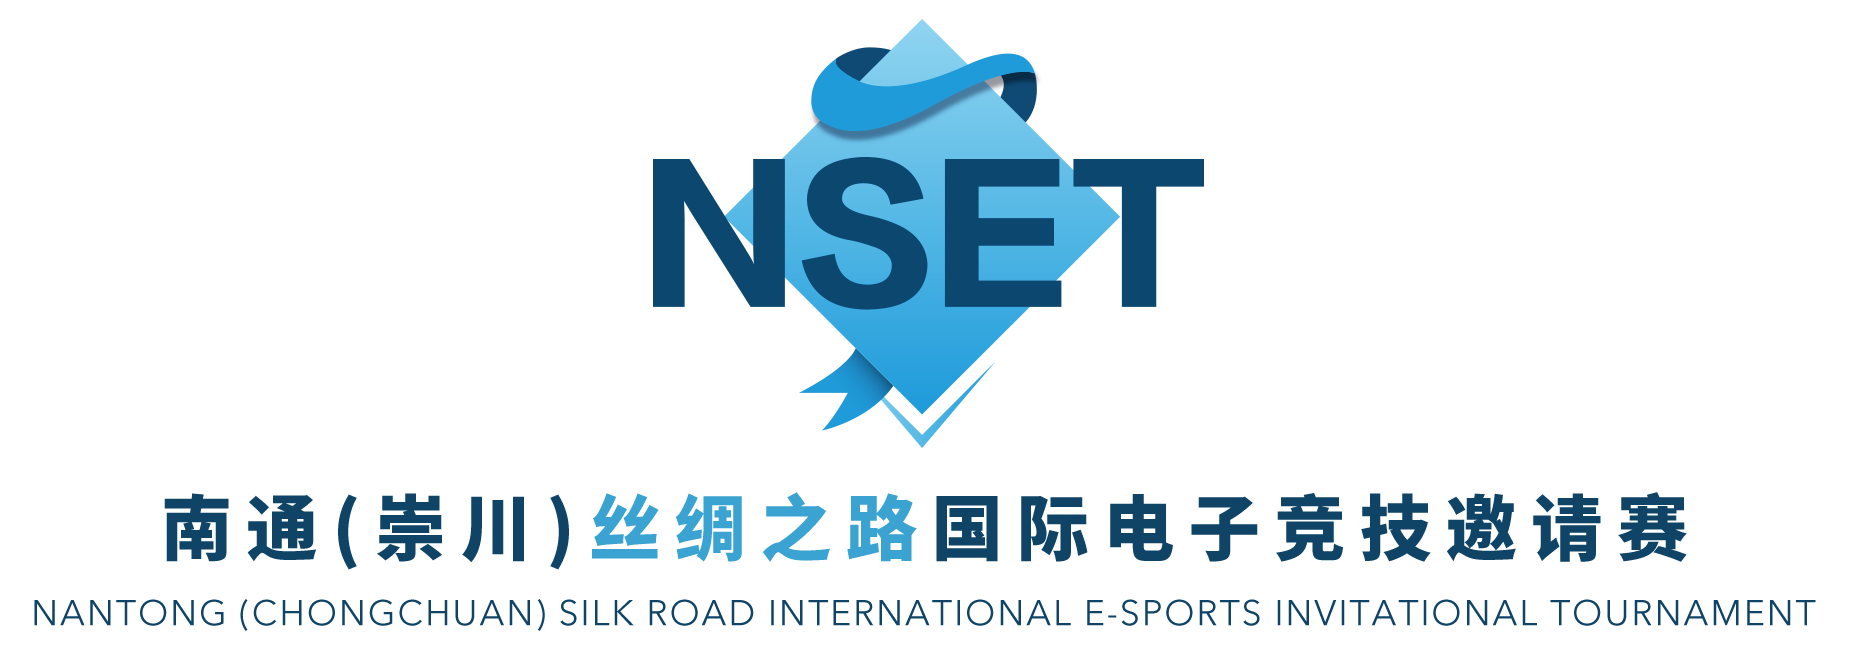 NSET CS:GO Series